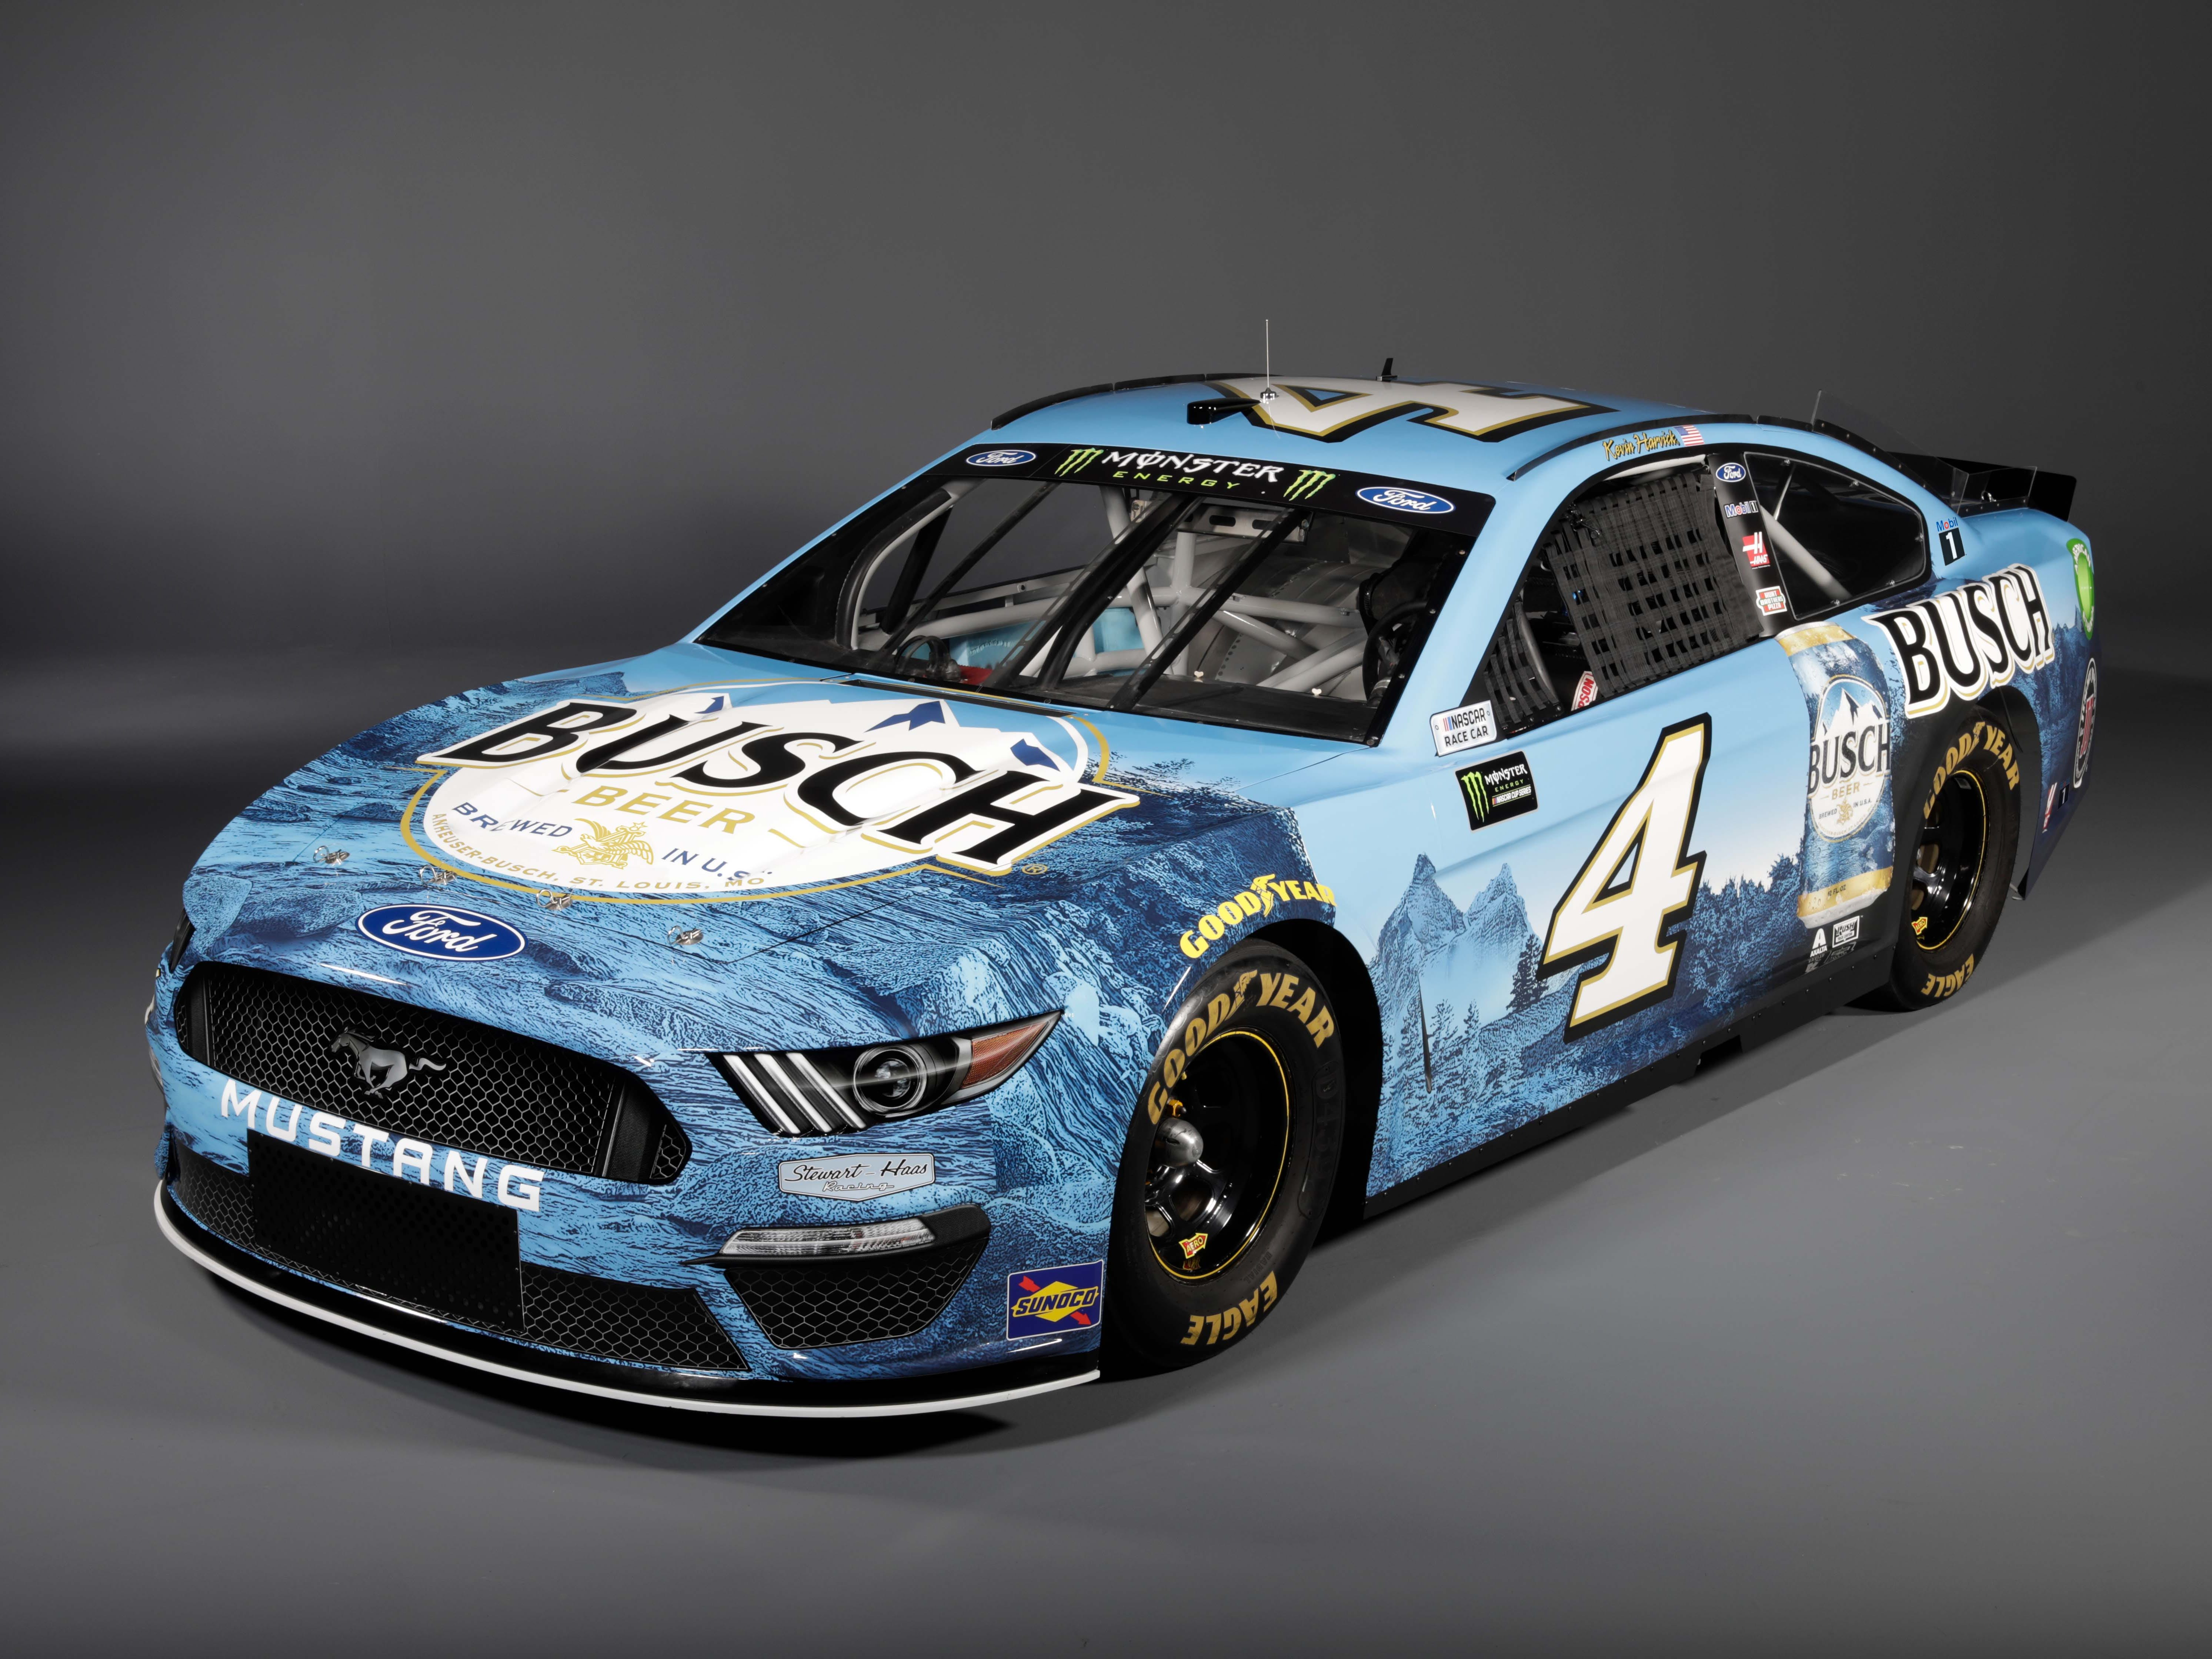 Stewart-Haas Racing has entered this #4 NASCAR Mustang for Kevin Harvick who nearly won the Cup title in 2018 in Ford's NASCAR Fusion.